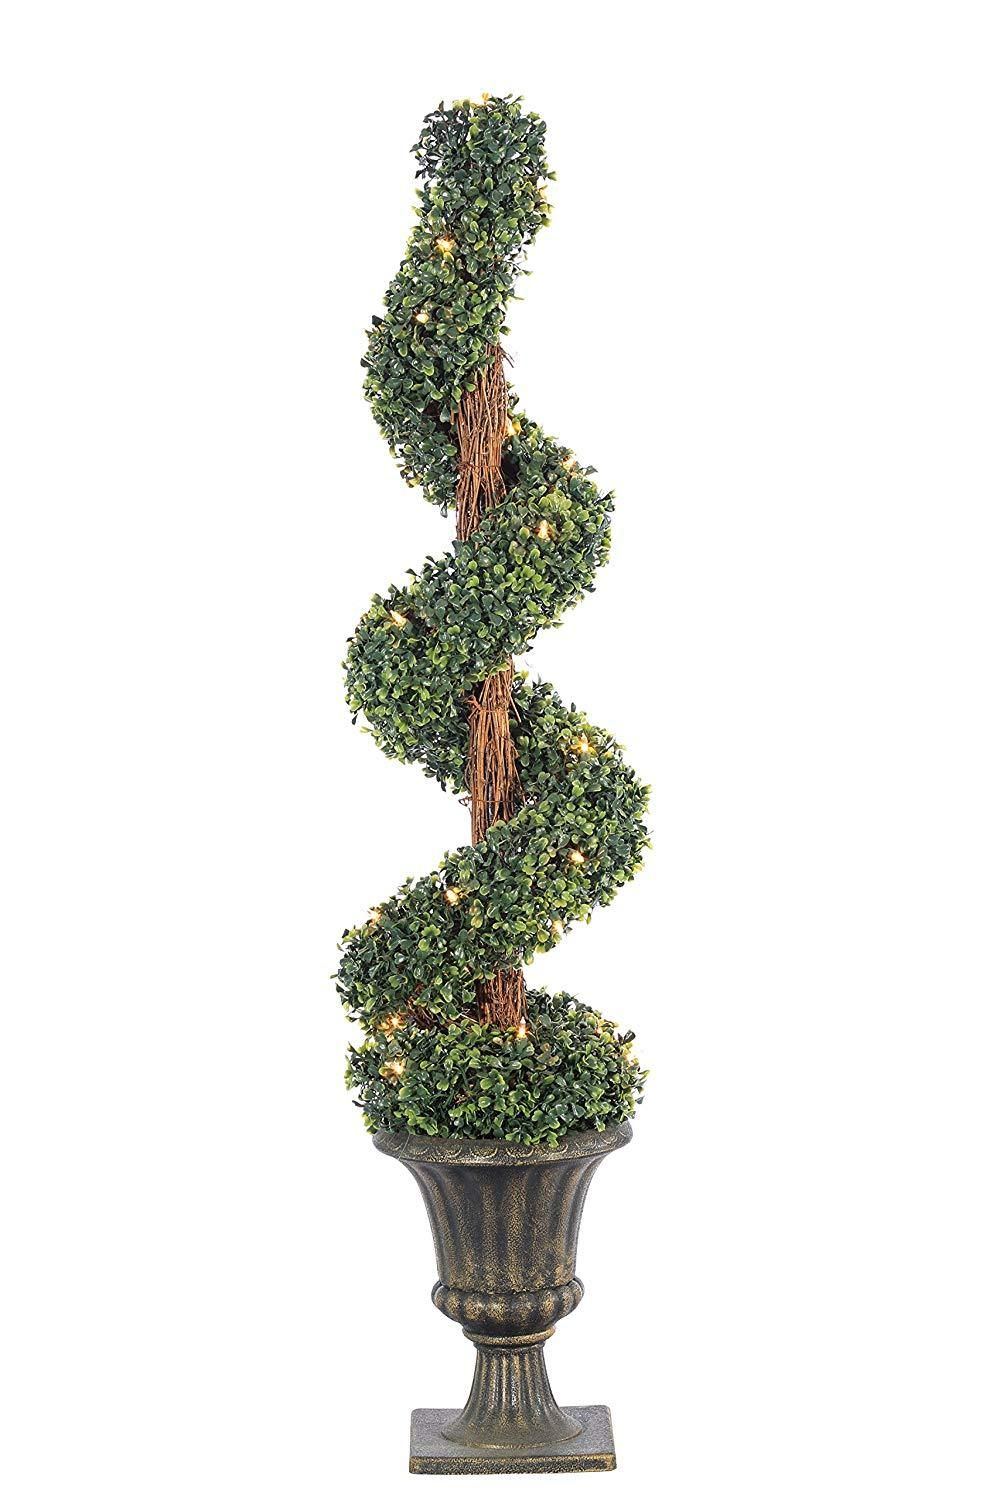 Sterling 4 Potted Artificial Boxwood Spiral Lighted Topiary Tree 5216 40c Spiral Tree Spiral Christmas Tree Artificial Boxwood